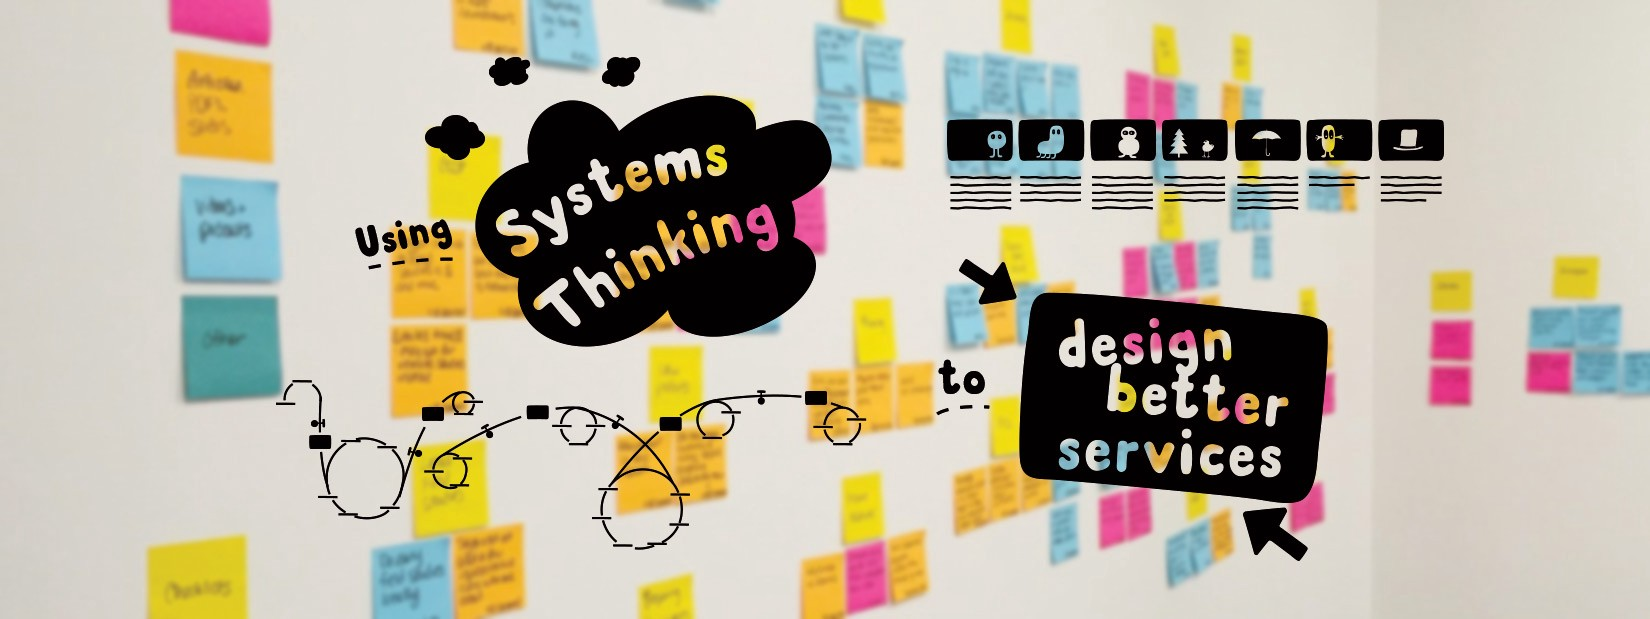 Using systems thinking to design better services mike laurie when creating new services for clients we very often dont delve deep enough into the organisation that delivers the service service solutions are often malvernweather